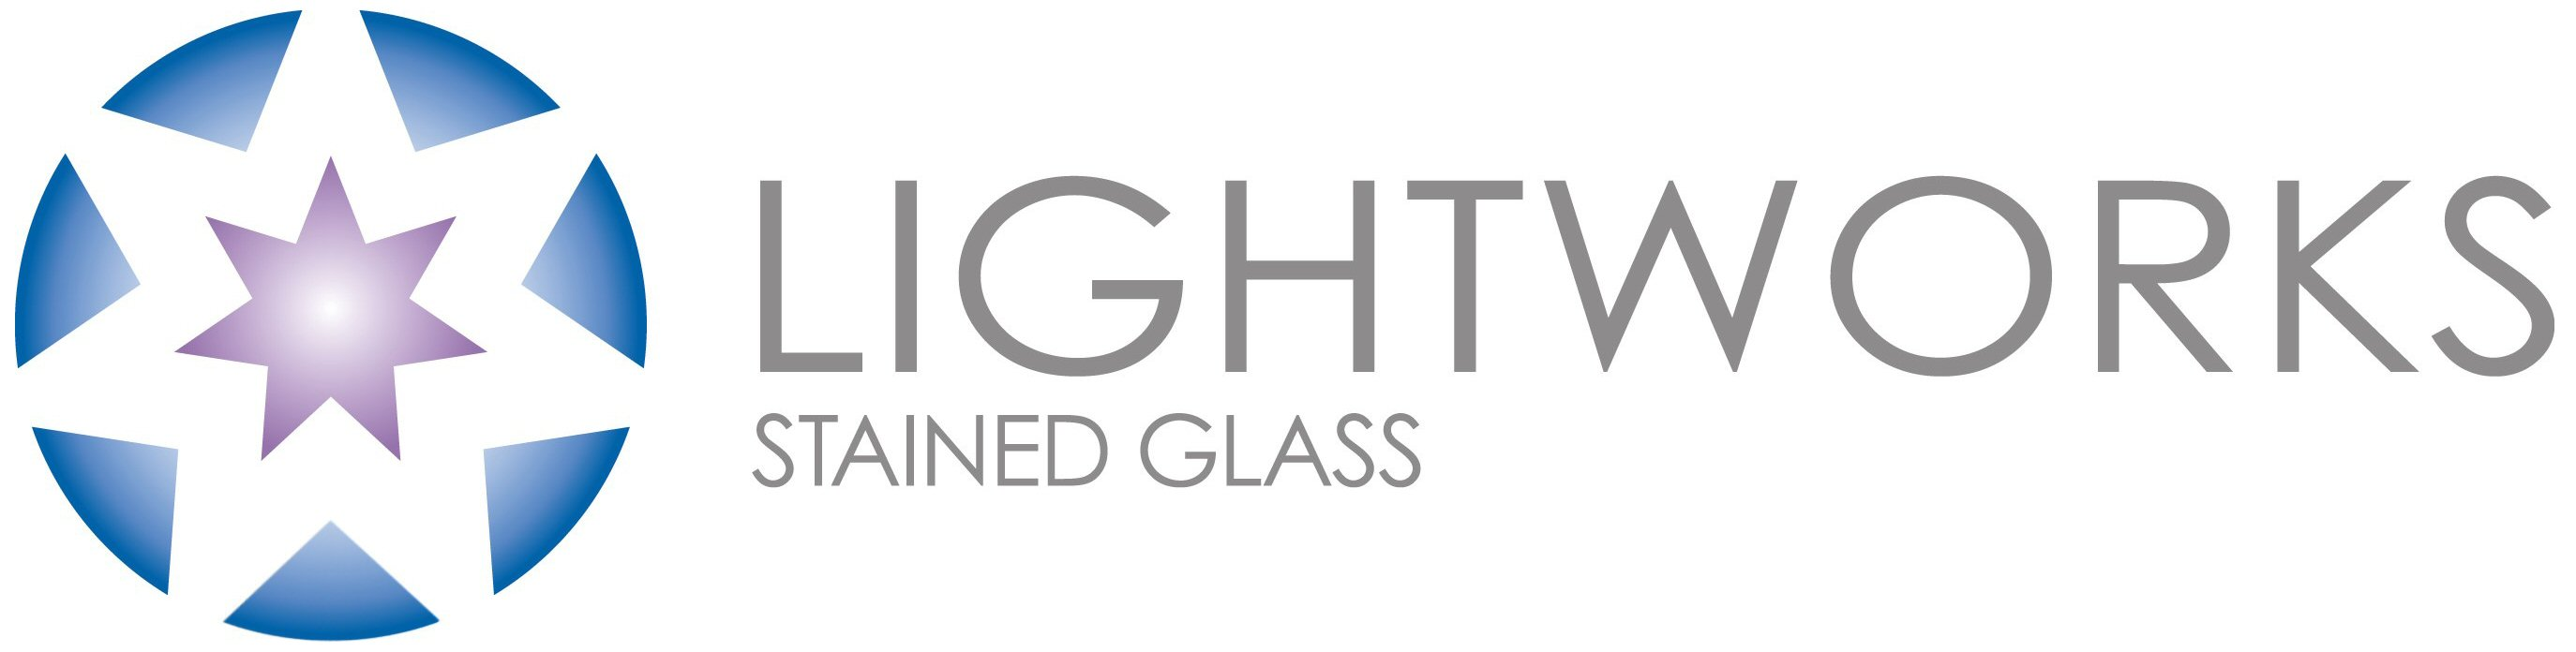 Stained Glass Window Specialists: Lightworks Stained Glass